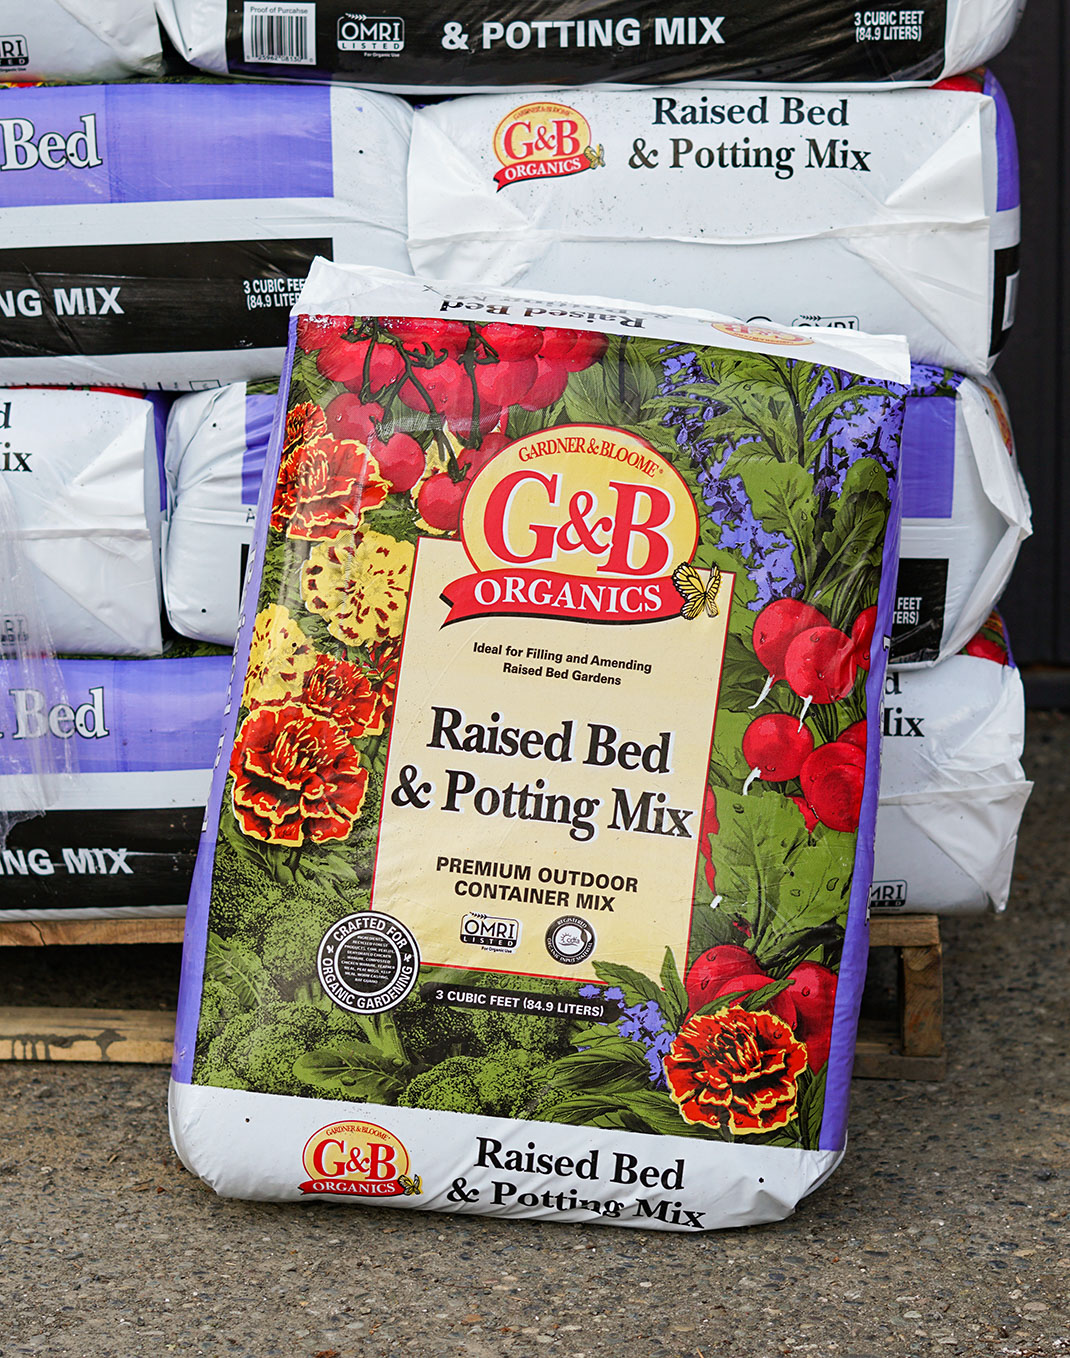 Raised Bed and Potting Mix